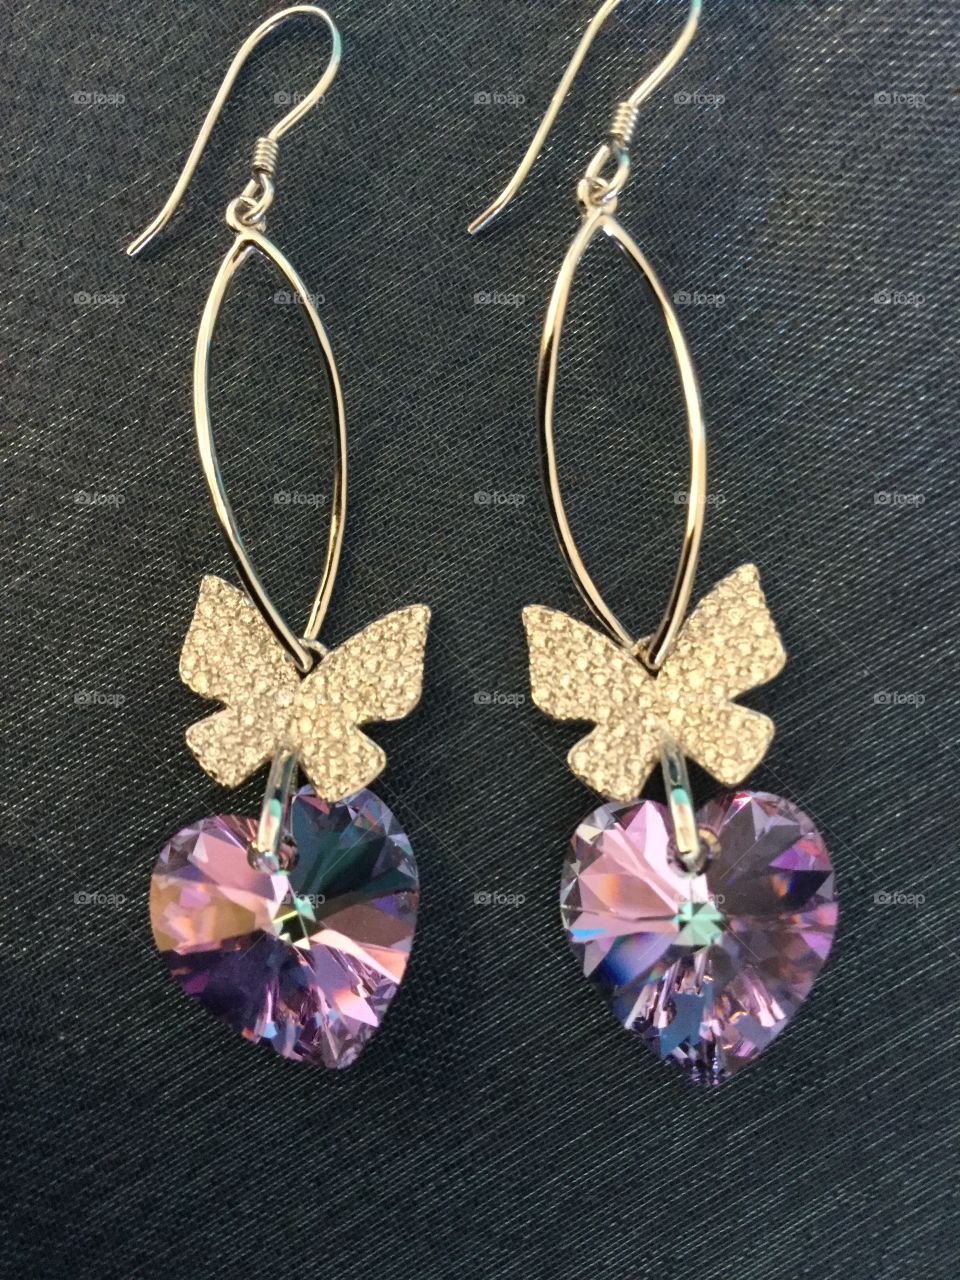 Crystal hearts and Silver butterfly earrings